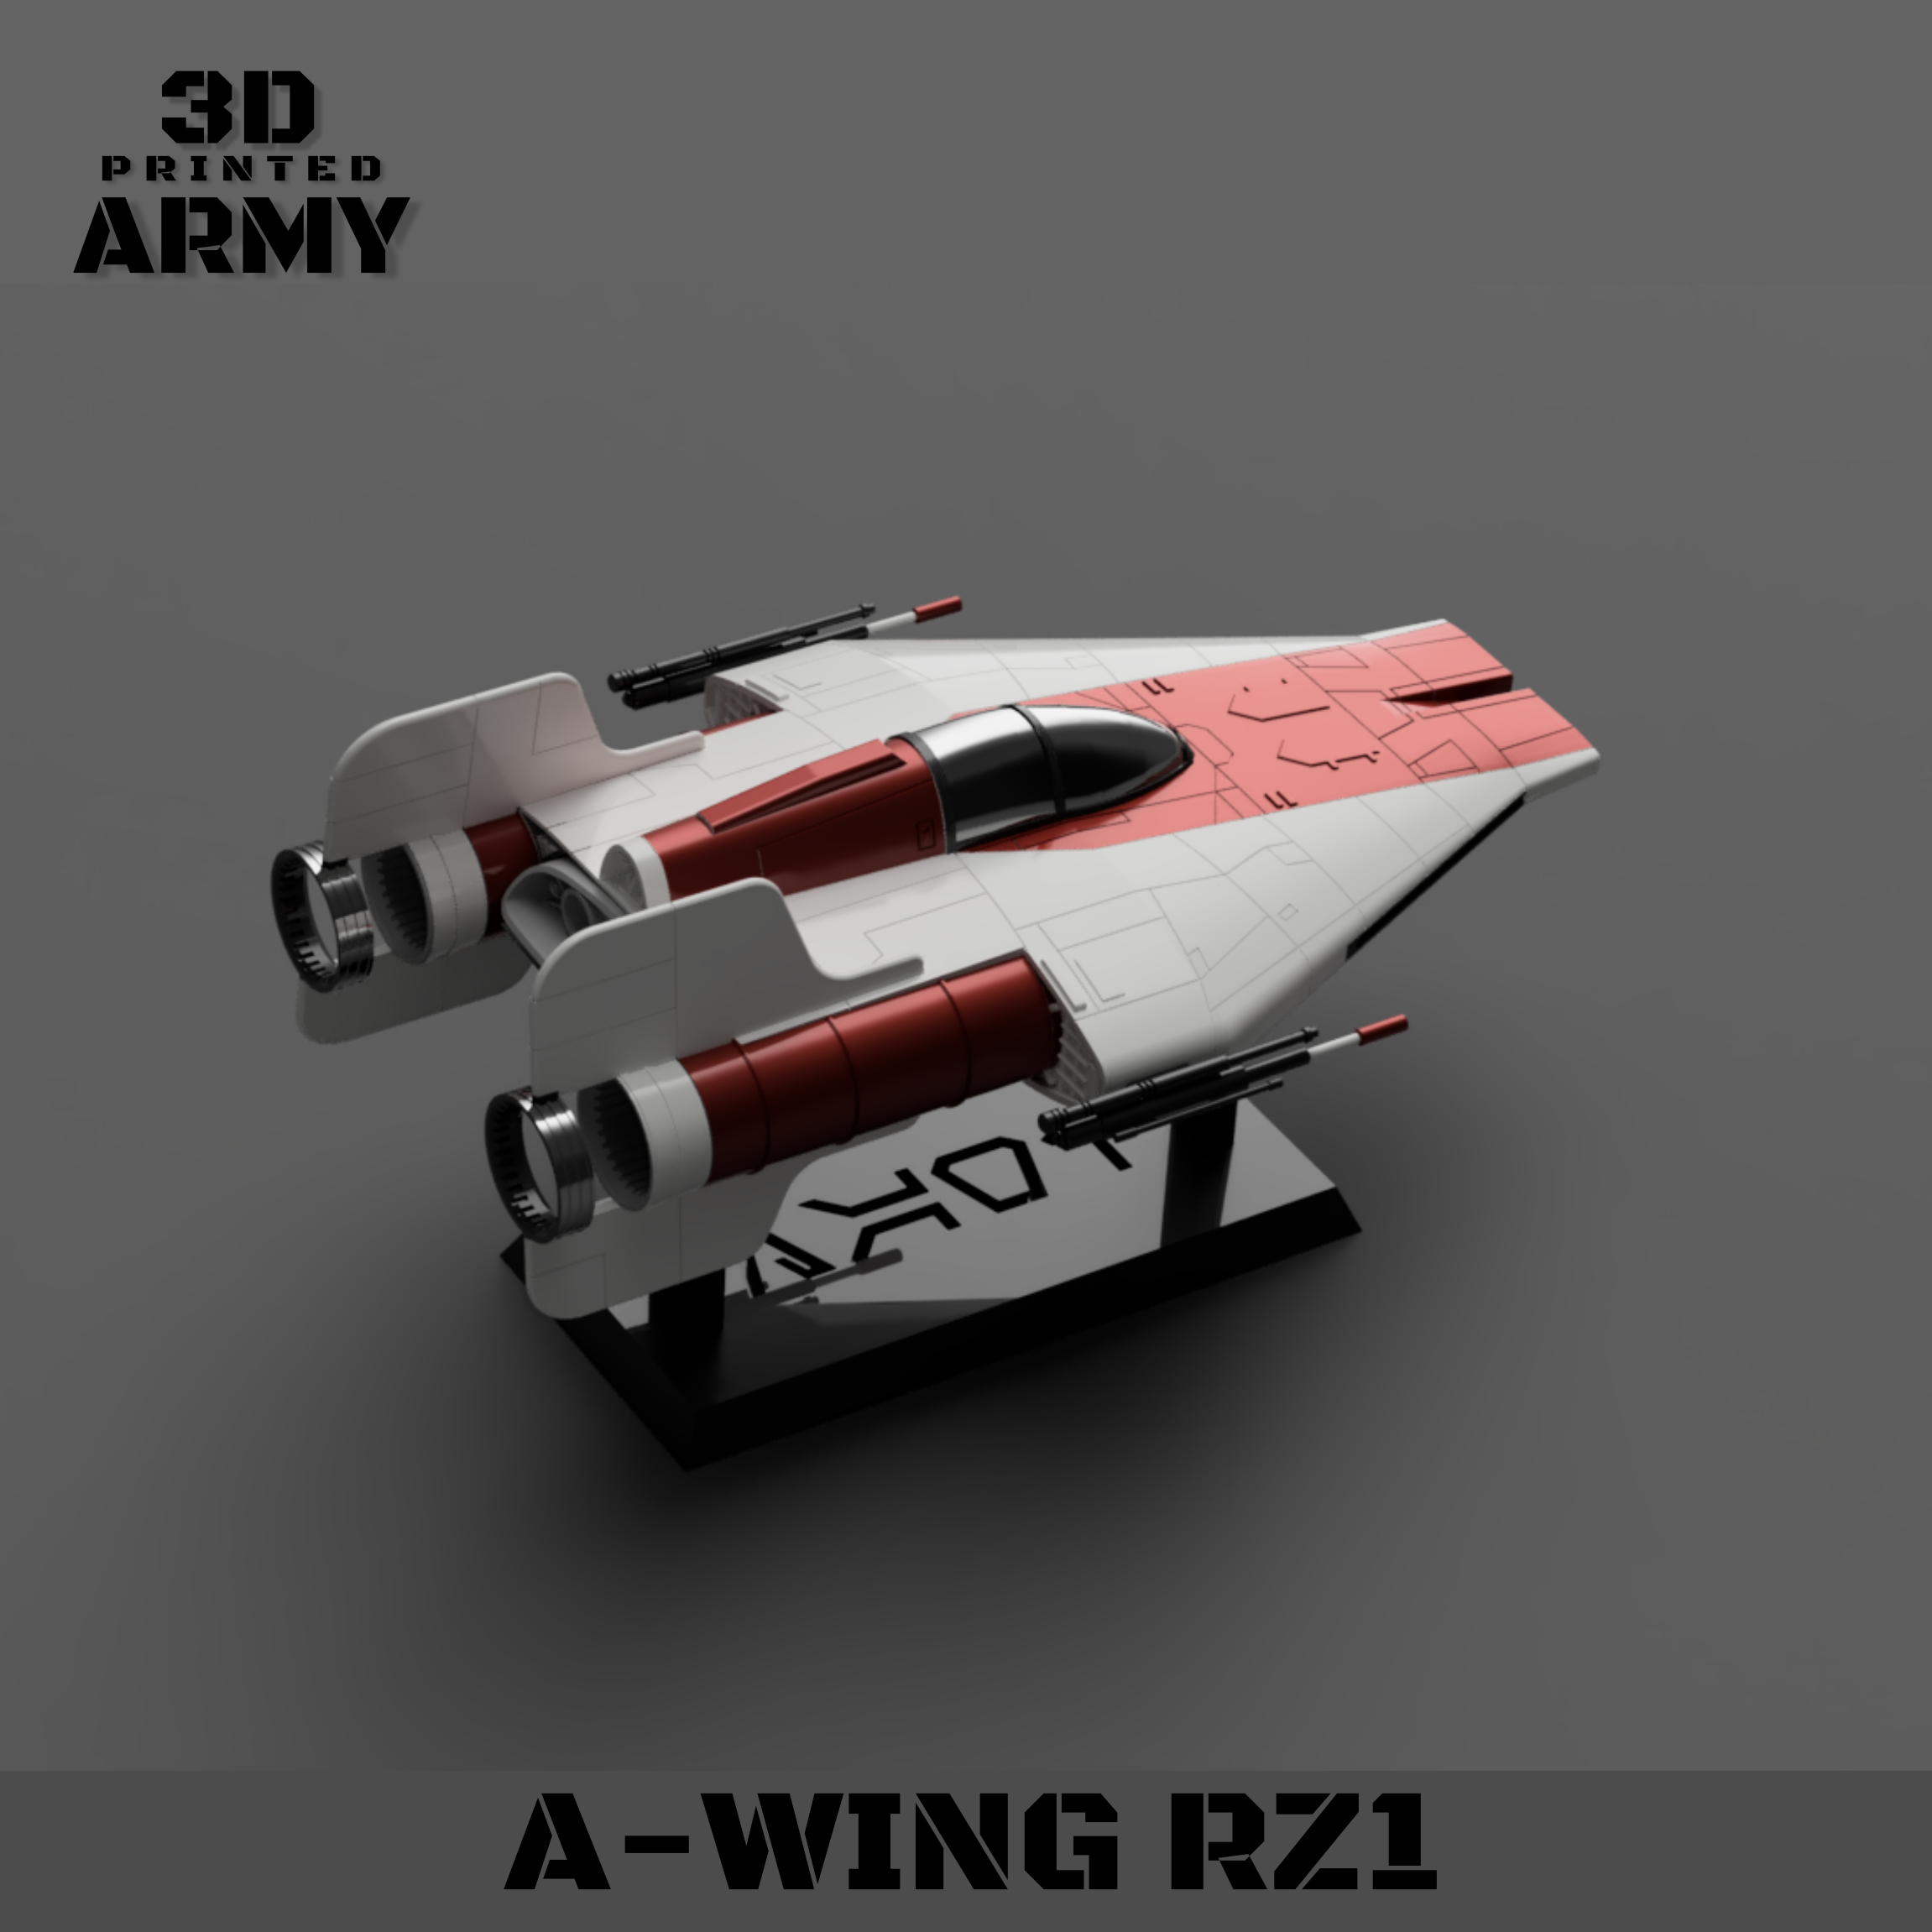 cults 6.png Download STL file STAR WARS   A-WING RZ-1 STARFIGHTER with BASEMENT  • Template to 3D print, 3DprintedArmy